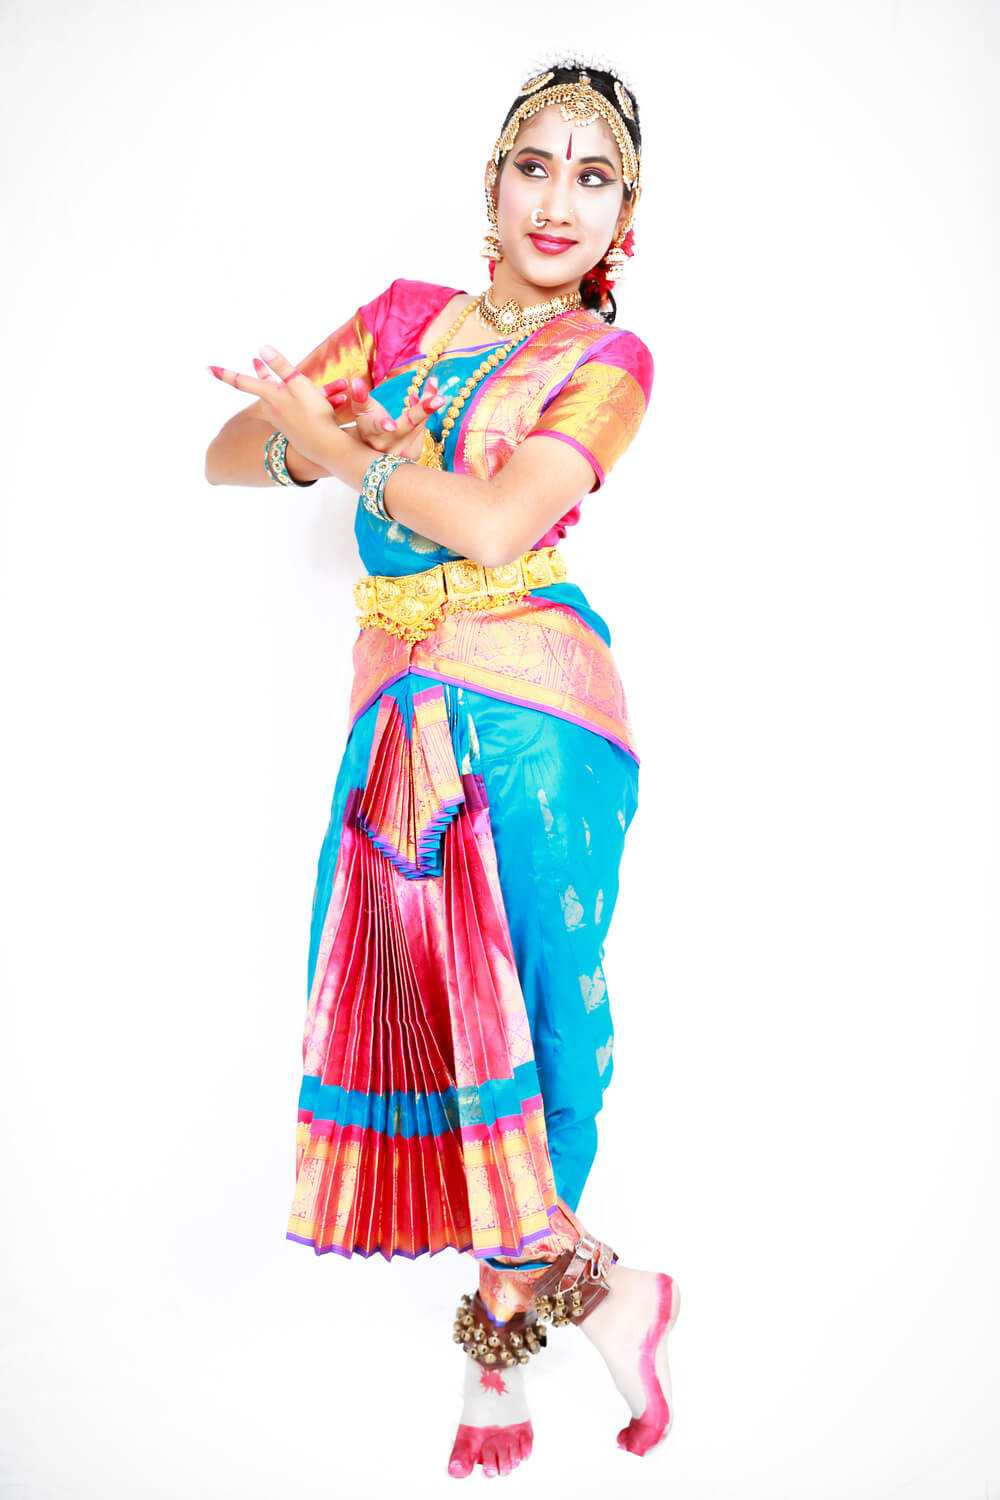 Classical Indian Dance poser